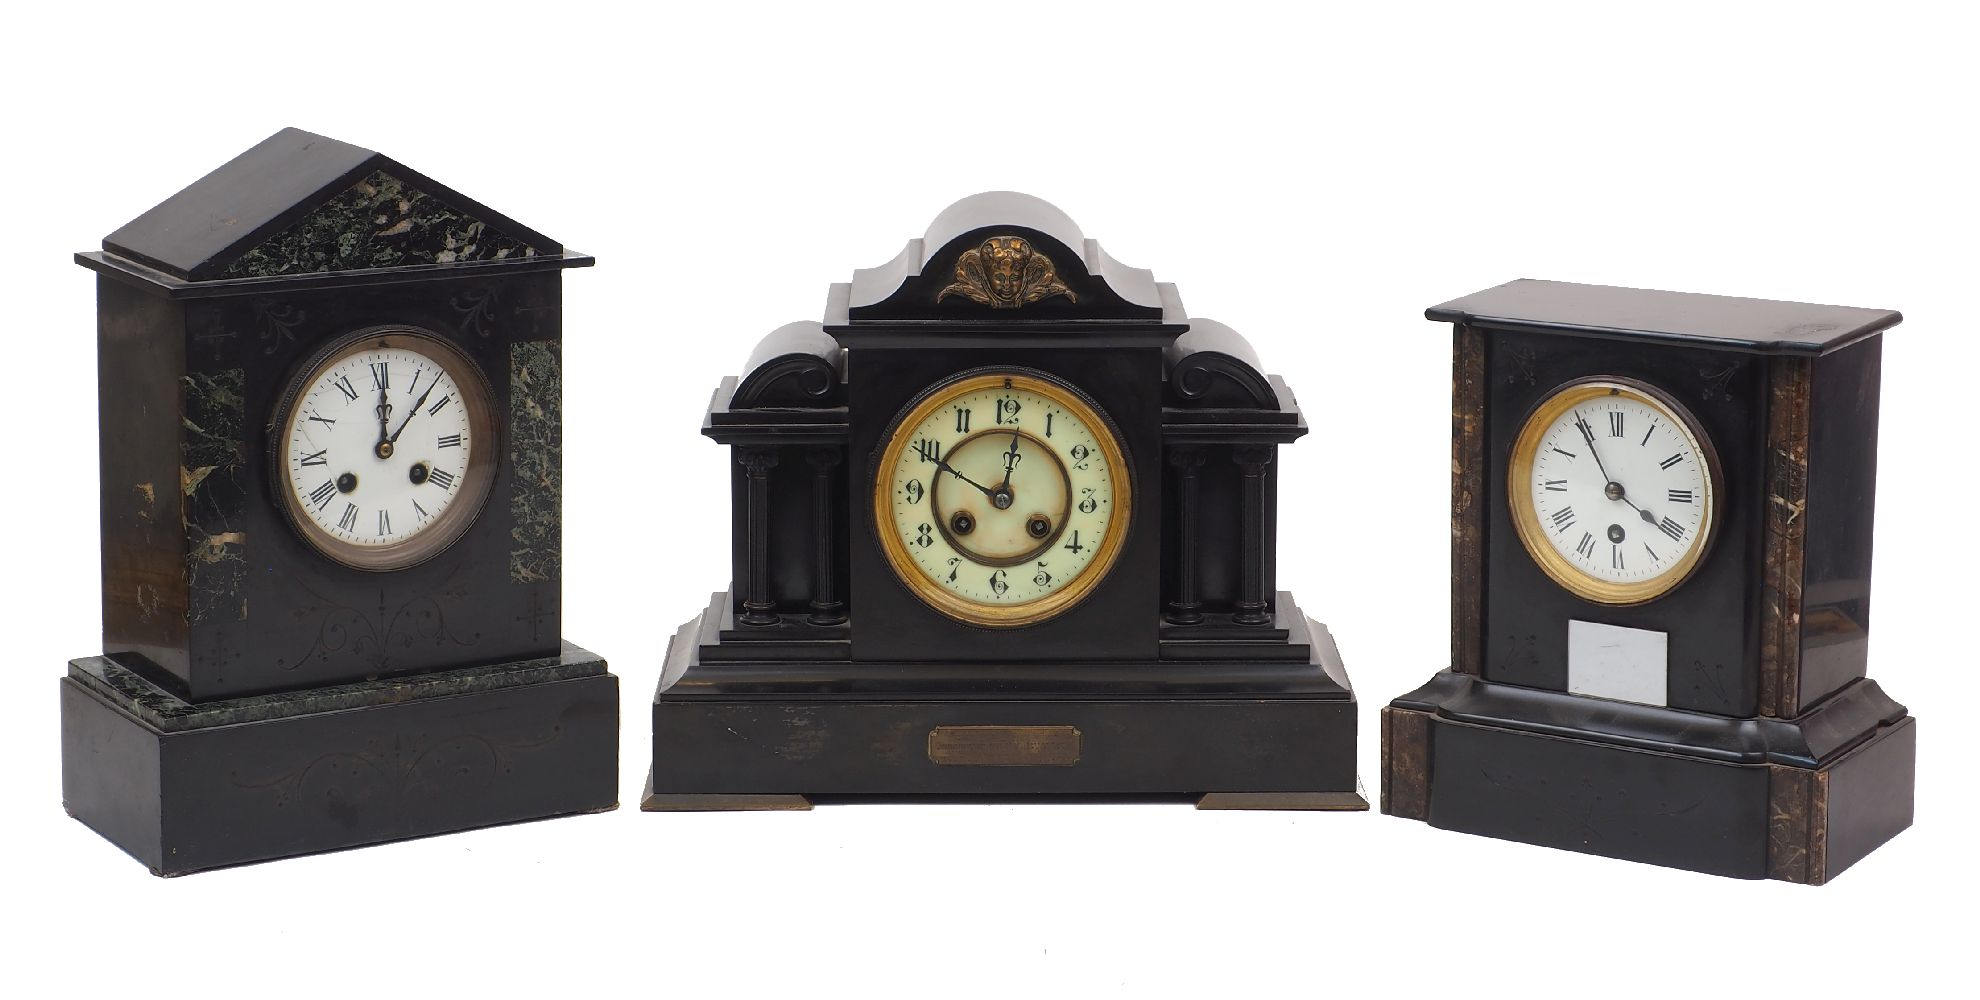 A group of three late Victorian slate and marble mantel clocks, late 19th/early 20th century, each